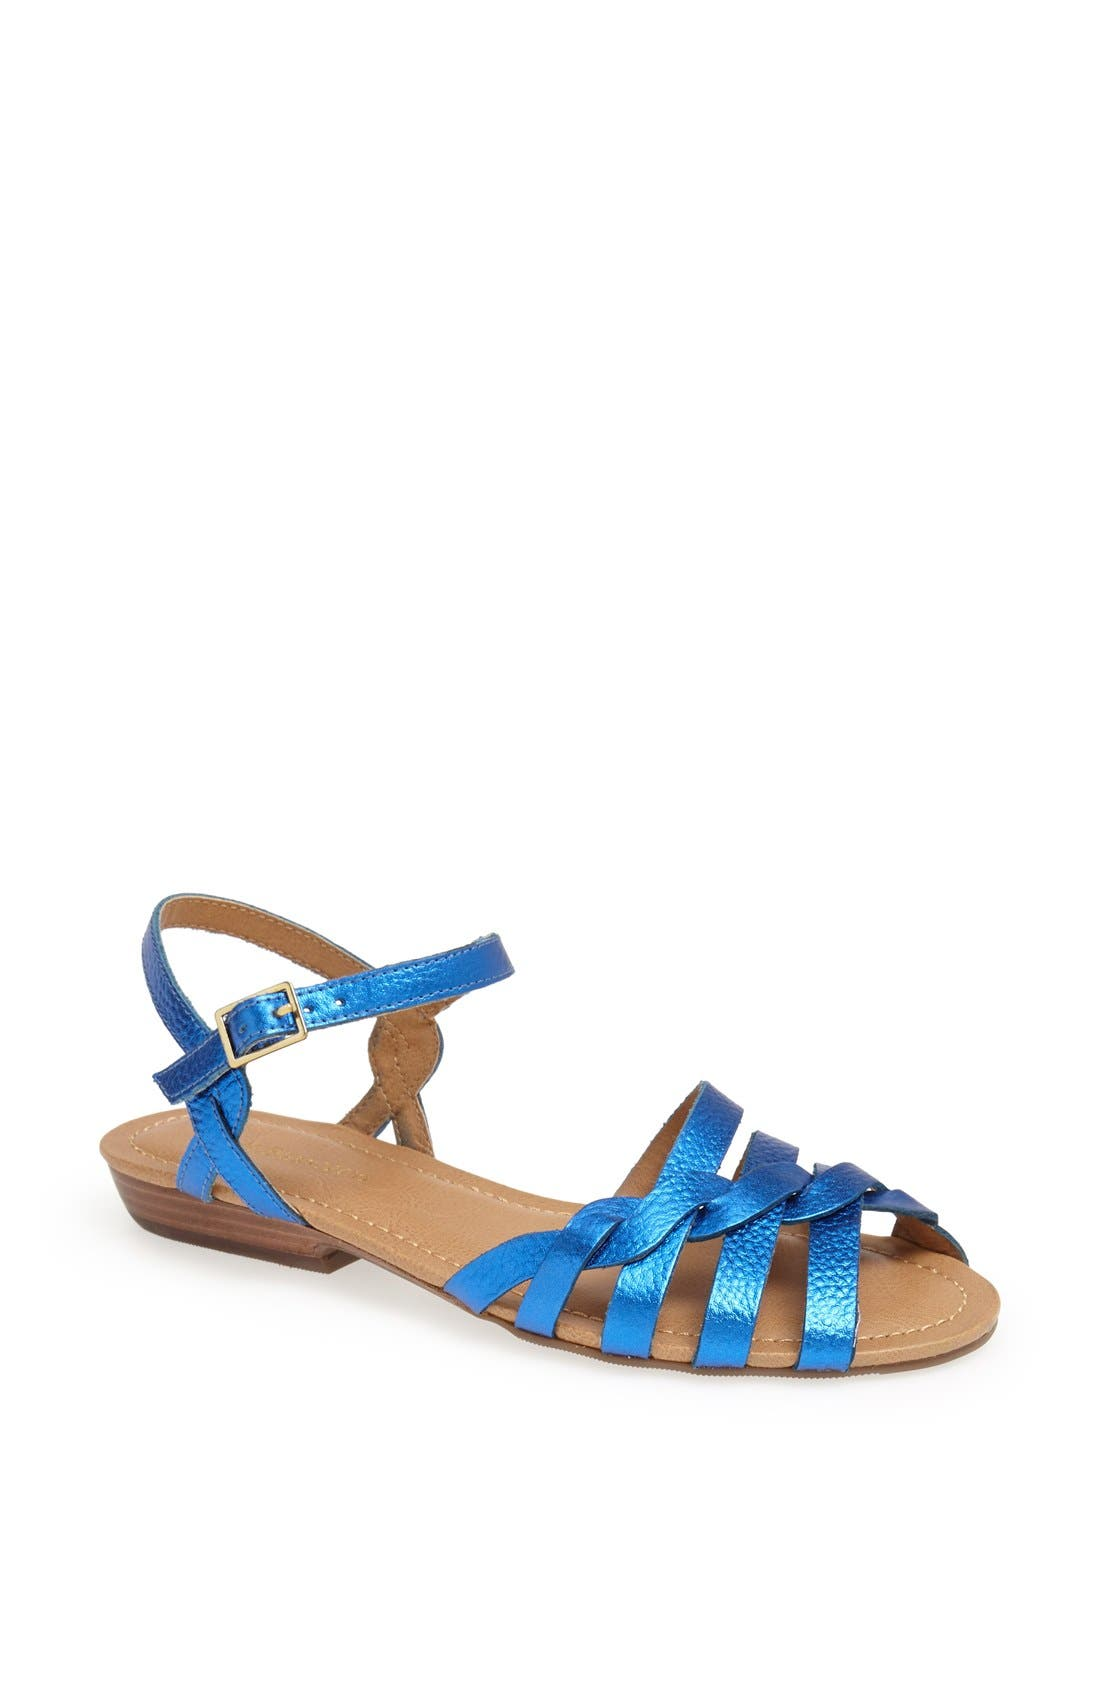 Main Image - G.H. Bass & Co. 'Clementine' Sandal